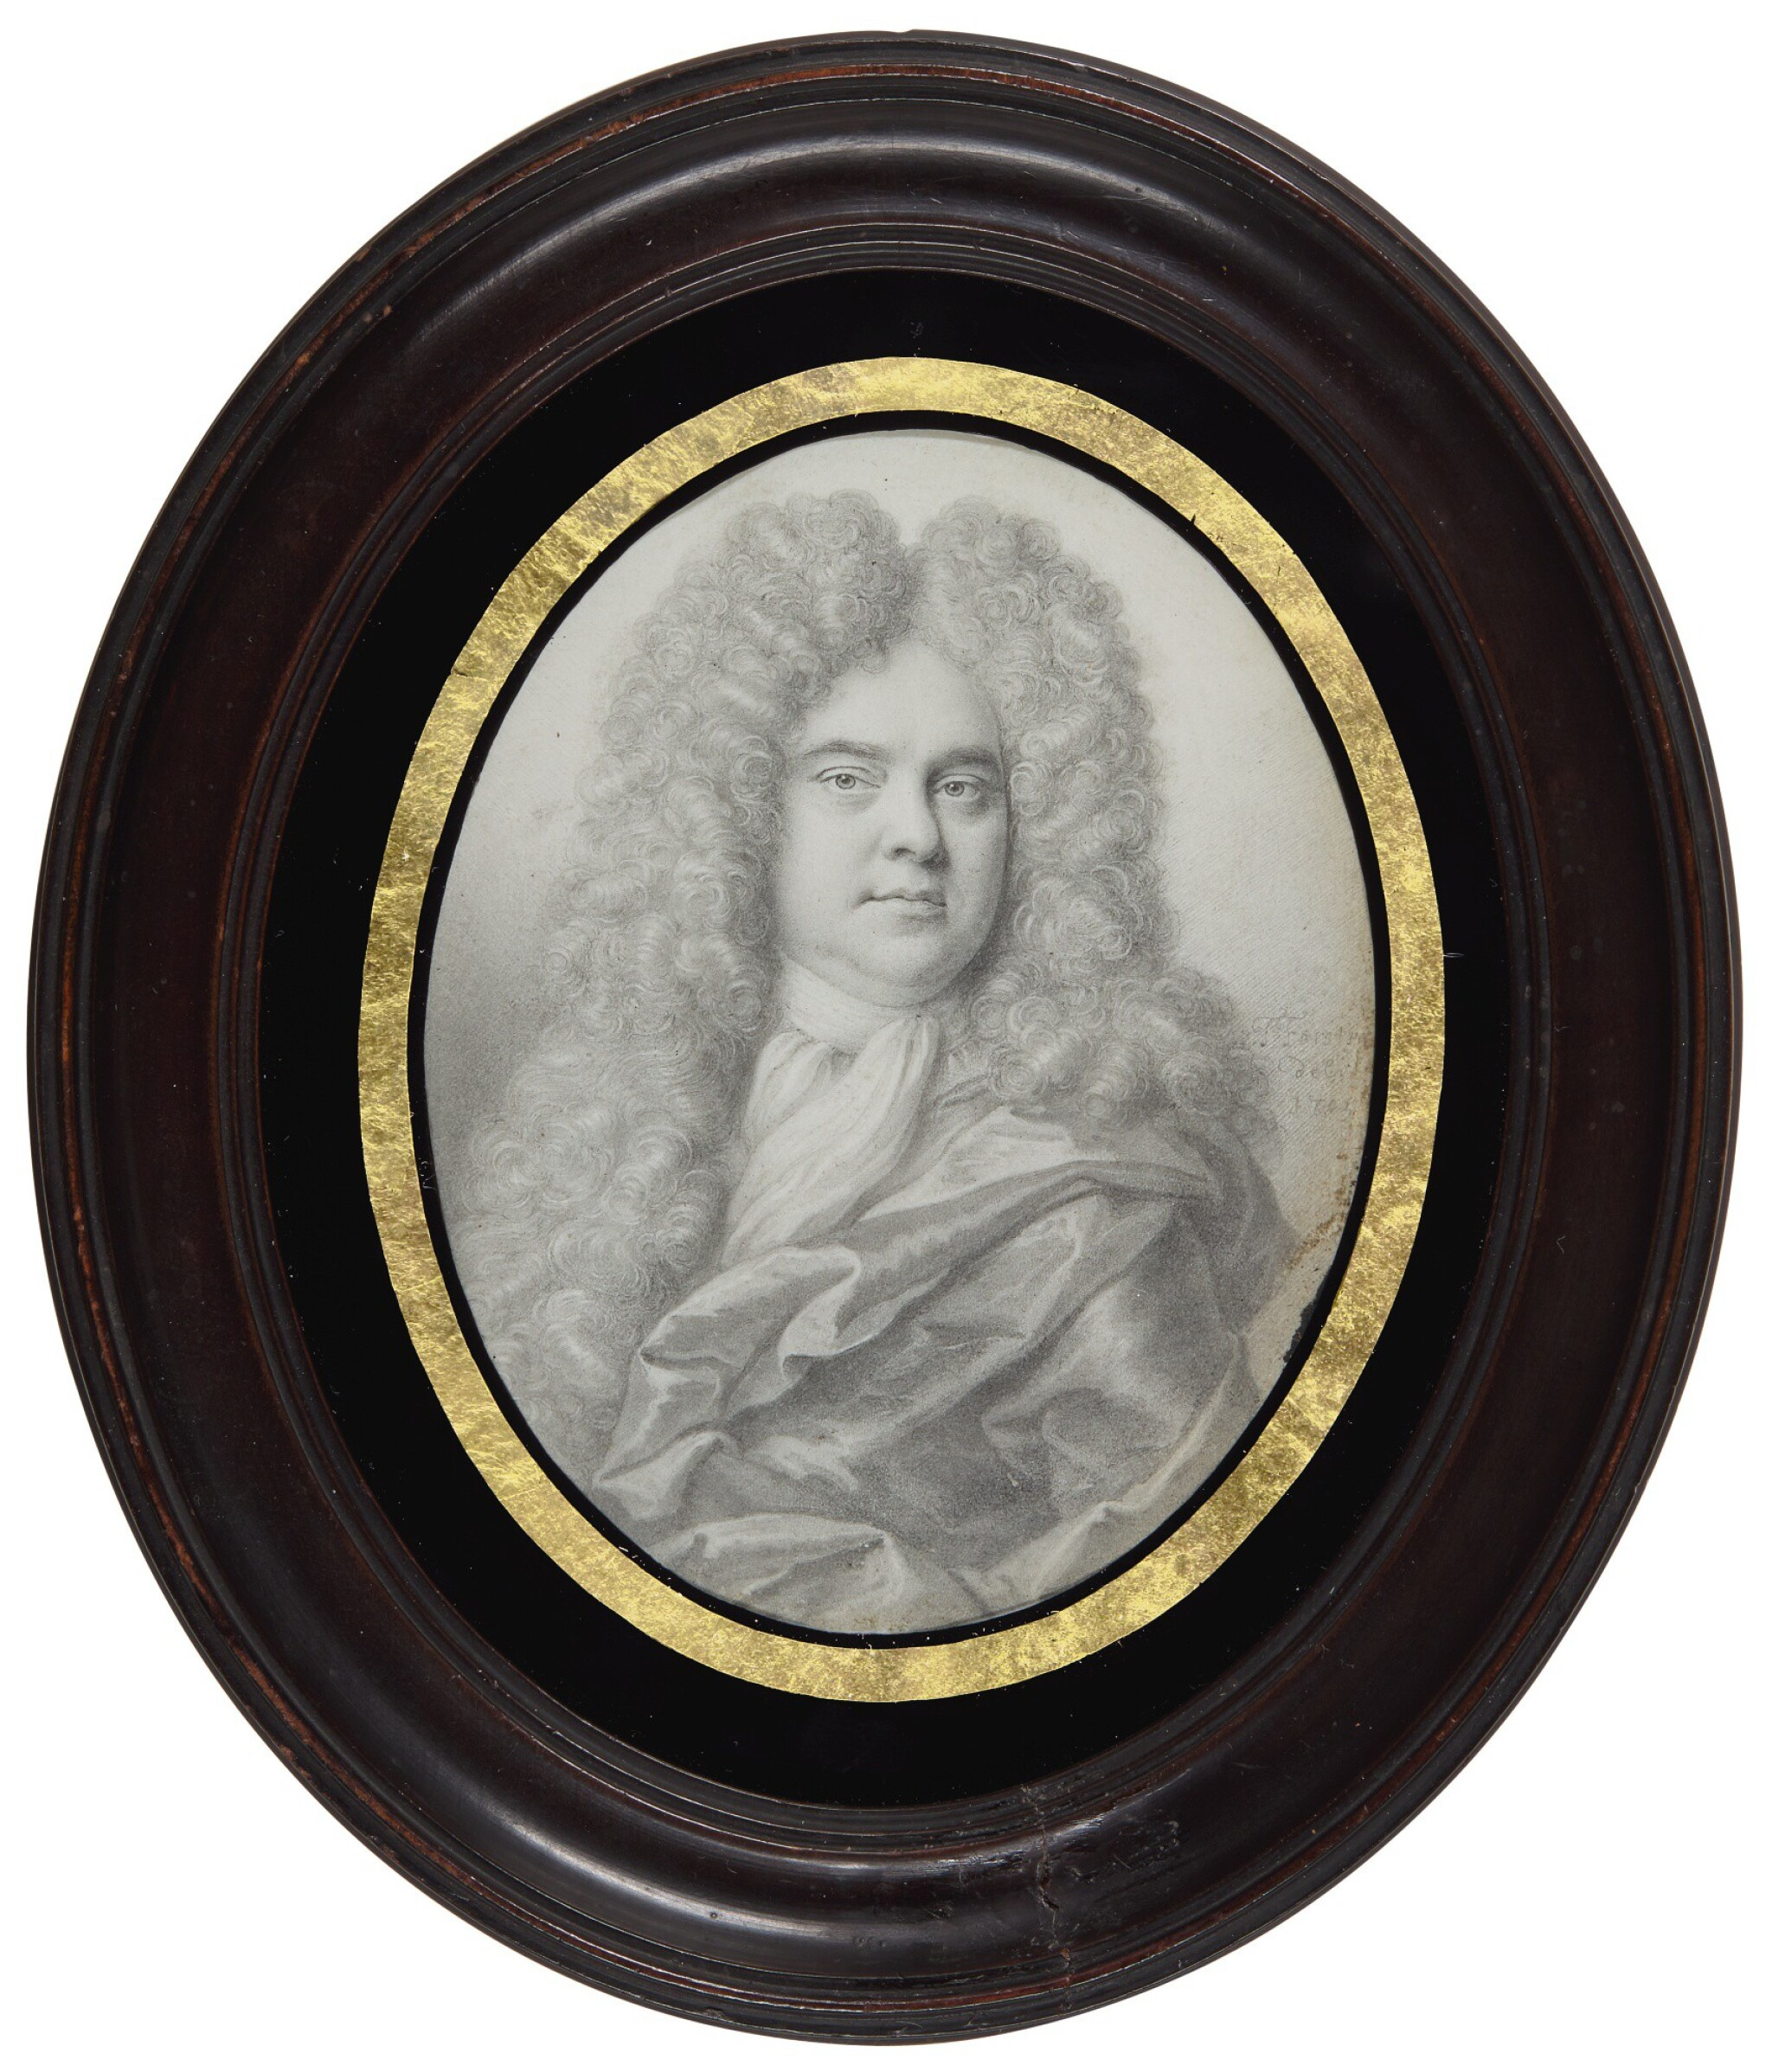 View full screen - View 1 of Lot 241. THOMAS FORSTER | PORTRAIT OF A GENTLEMAN.